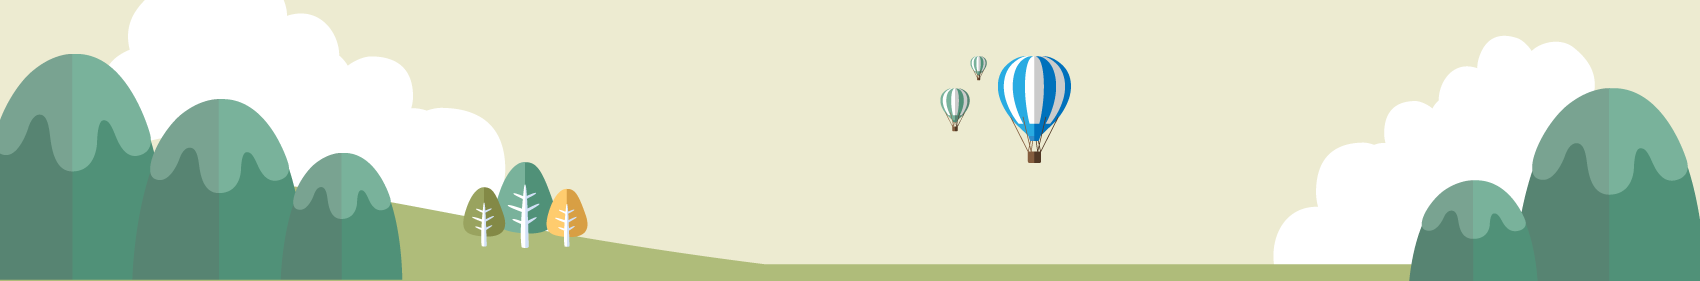 background-lanscape-balloon